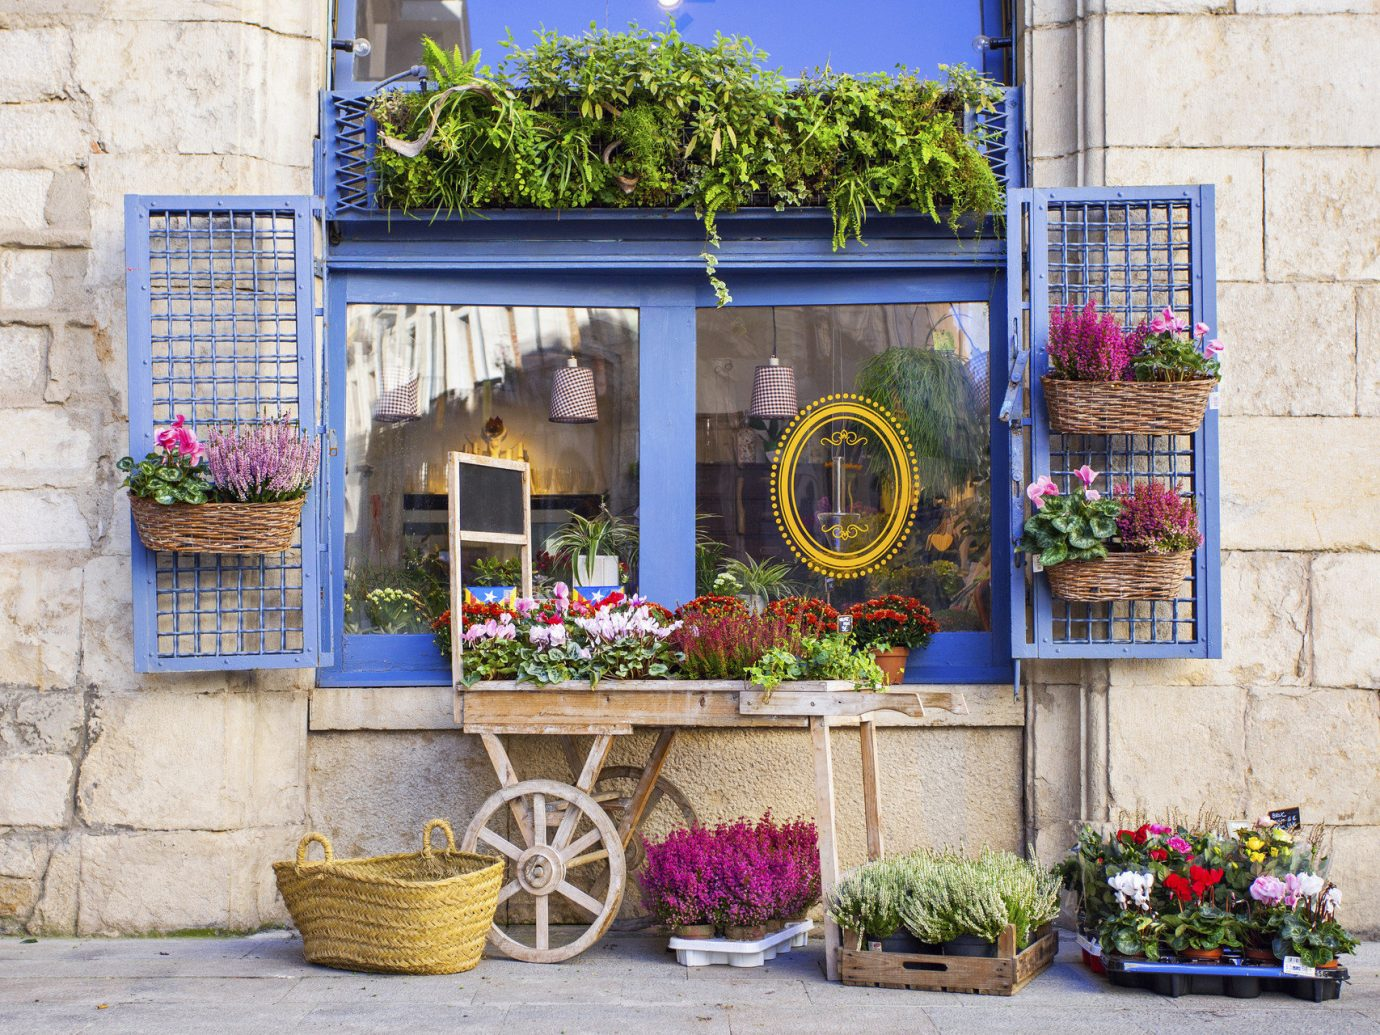 Romance Travel Tips Trip Ideas building outdoor flower floristry Balcony facade home Courtyard Garden yard window stone